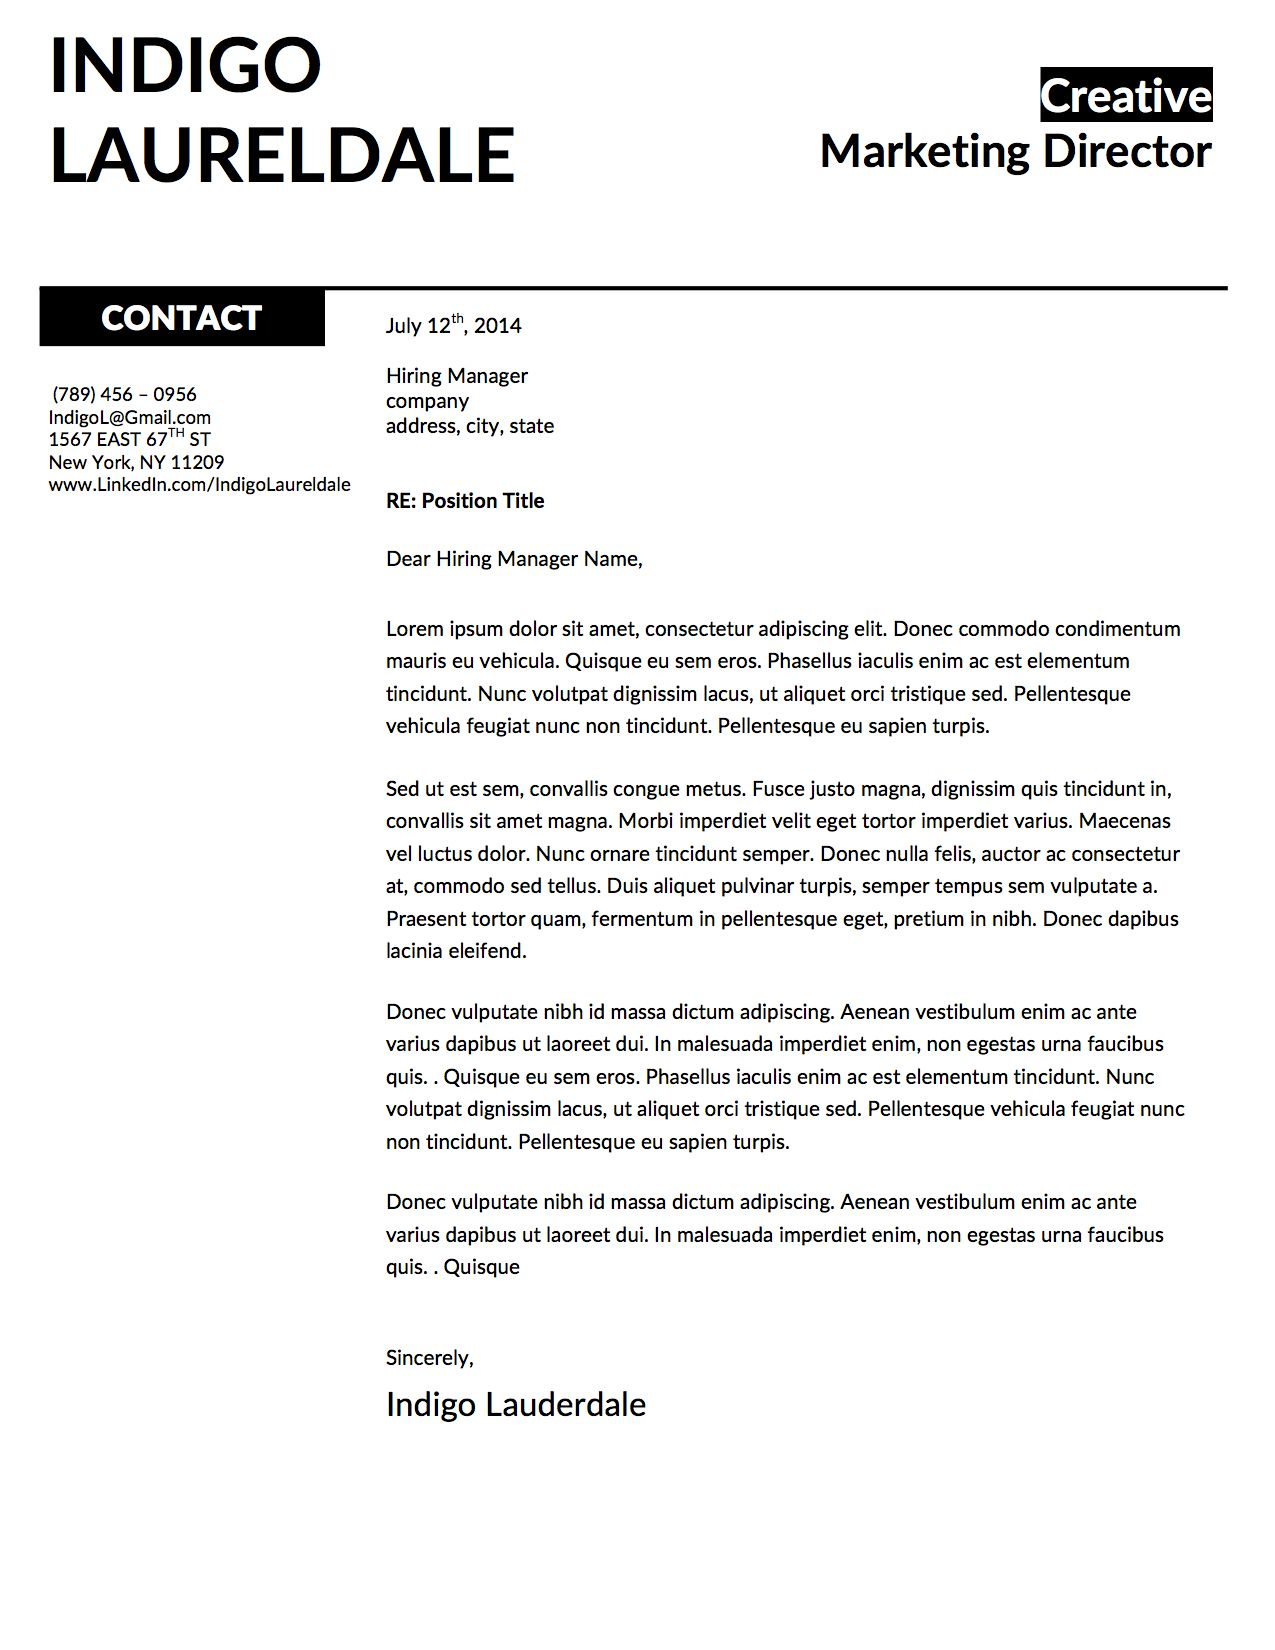 Indigo lauderdale cover letter template for microsoft word indigo lauderdale cover letter template for microsoft word madrichimfo Image collections